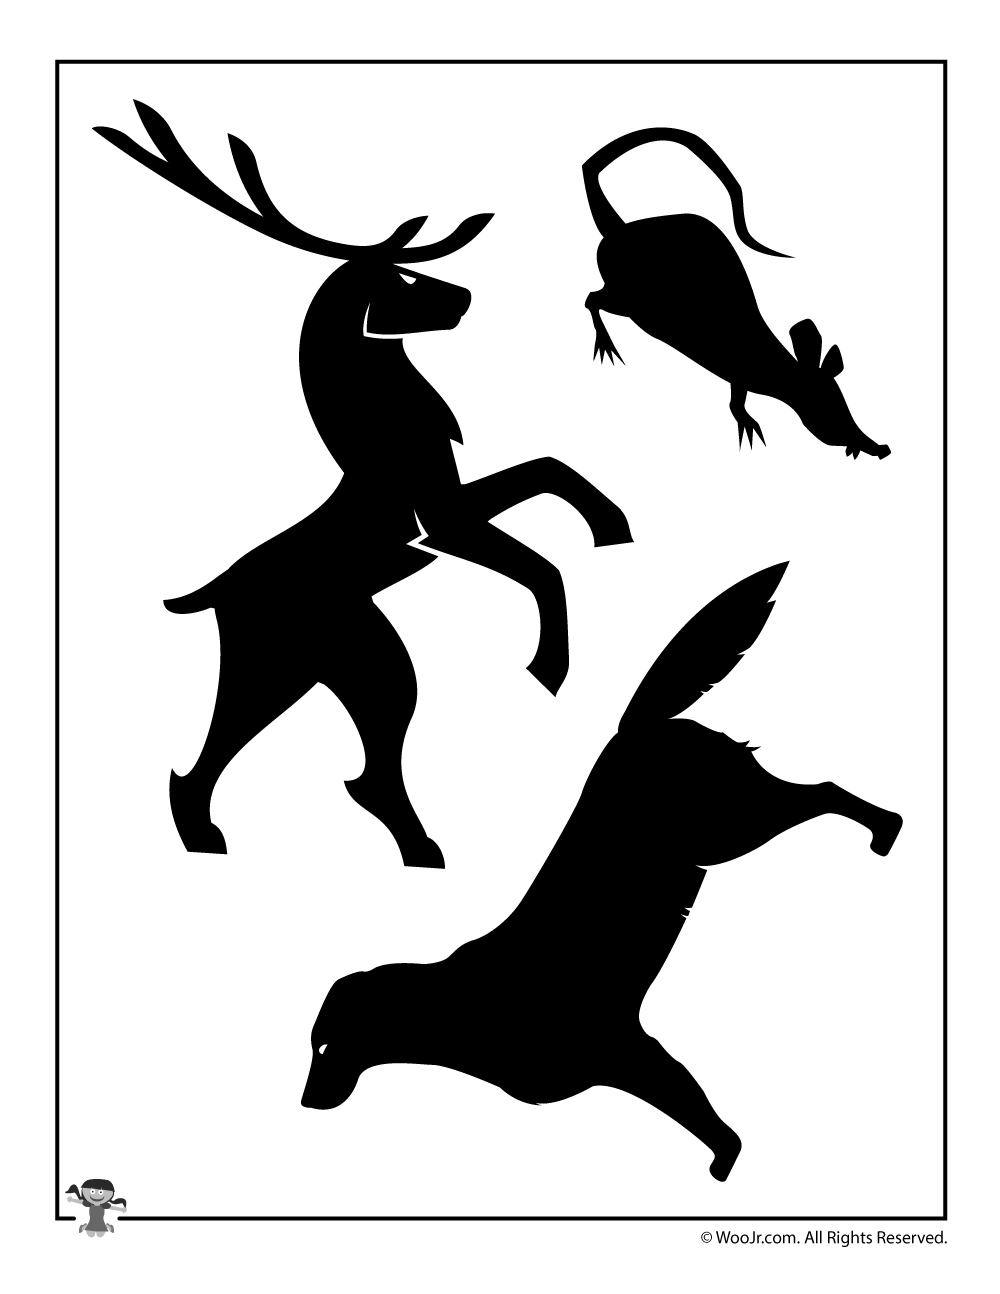 Animagi and Patronus Stag, Wormtail, and Padfoot Shadow